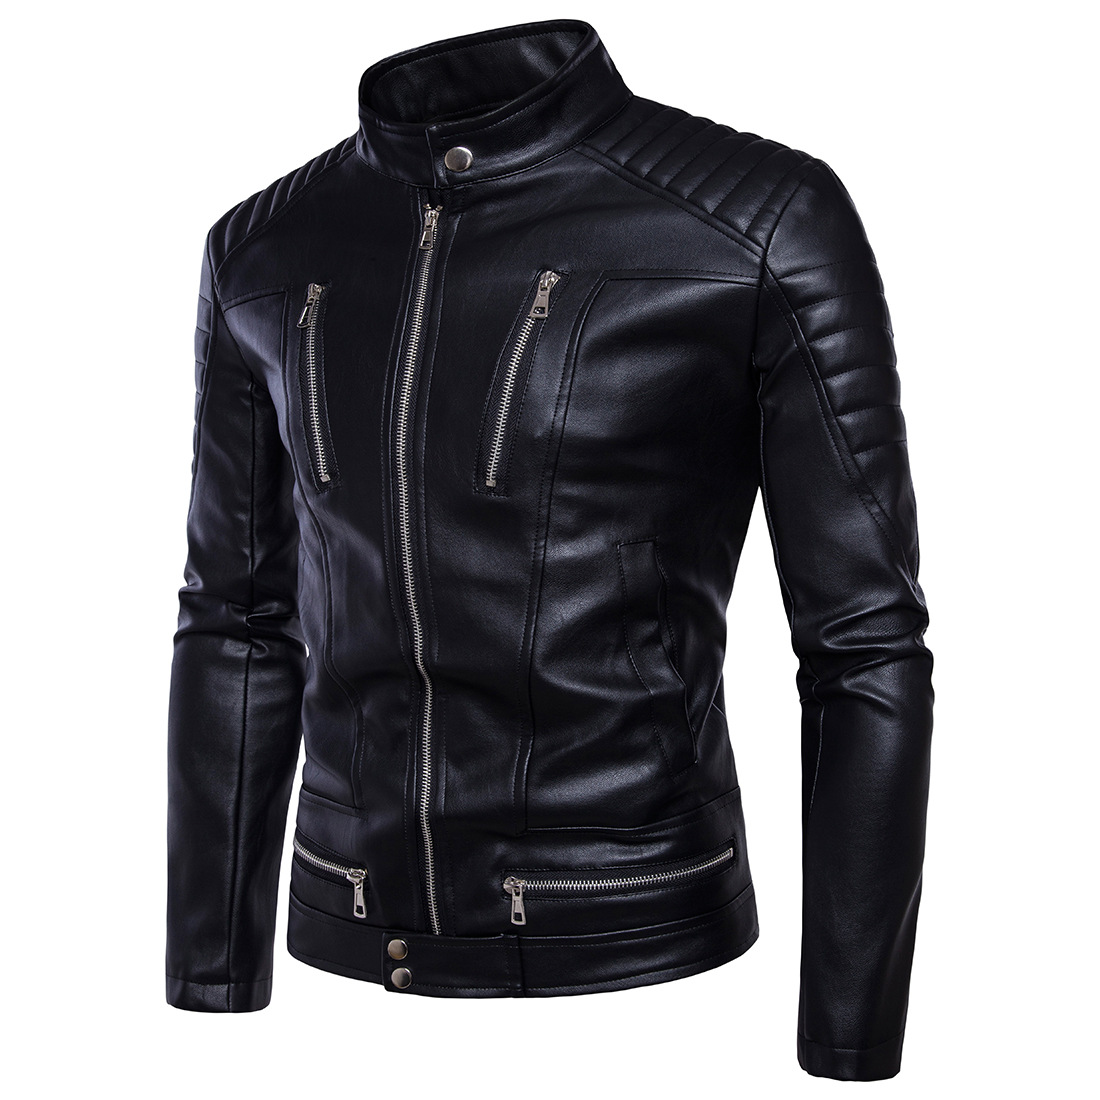 High quality Spring fashion leather jackets men, mens leather jacket Xu.ing motorcycle leather jackets Zip pocket decoration